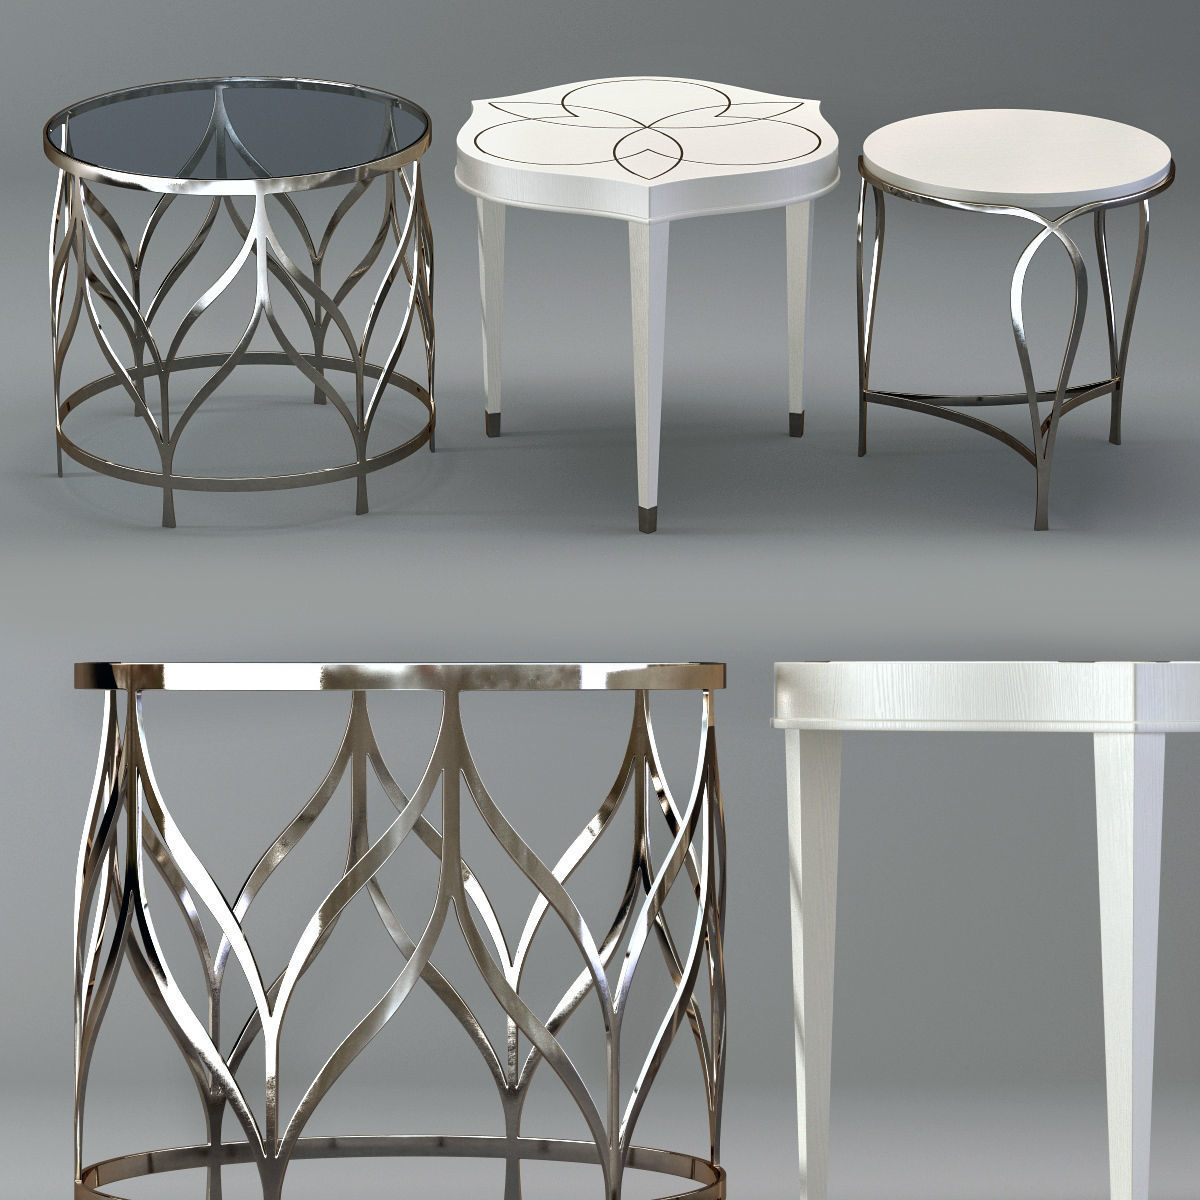 Surprising Bernhardt Calista Accent Tables 3D Model Gmtry Best Dining Table And Chair Ideas Images Gmtryco